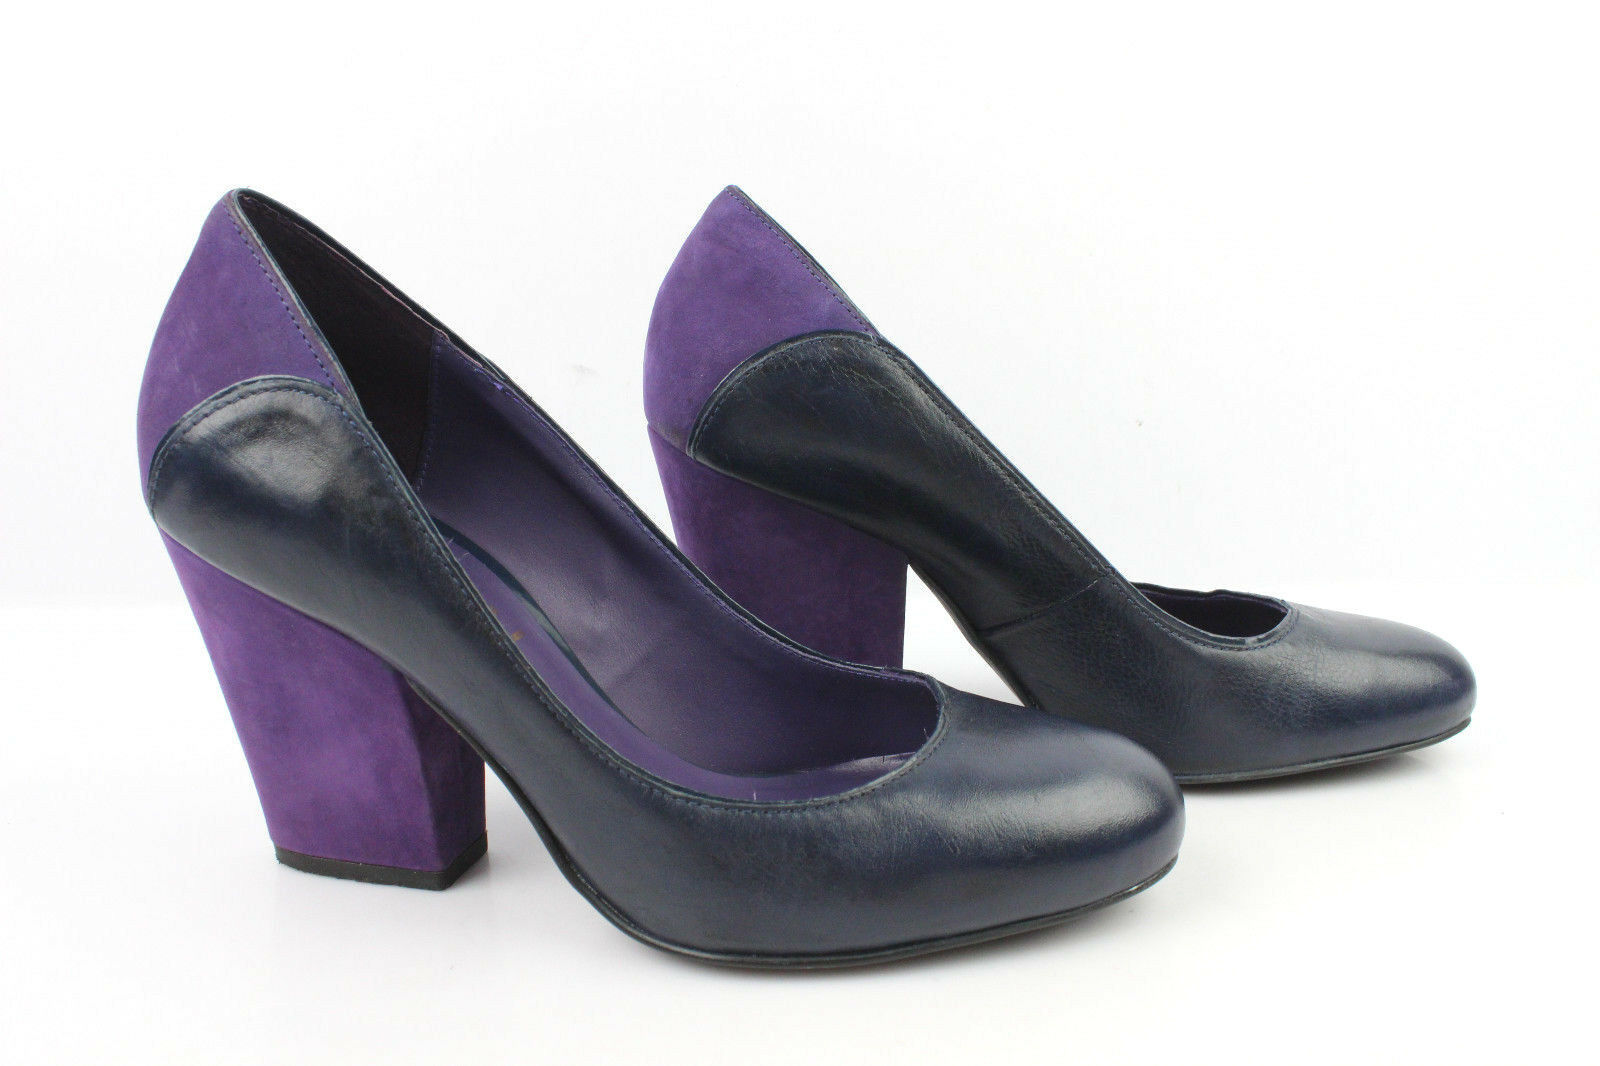 Court shoes KOOKAI Leather Navy bluee and suede Purple T 38 VERY GOOD CONDITION